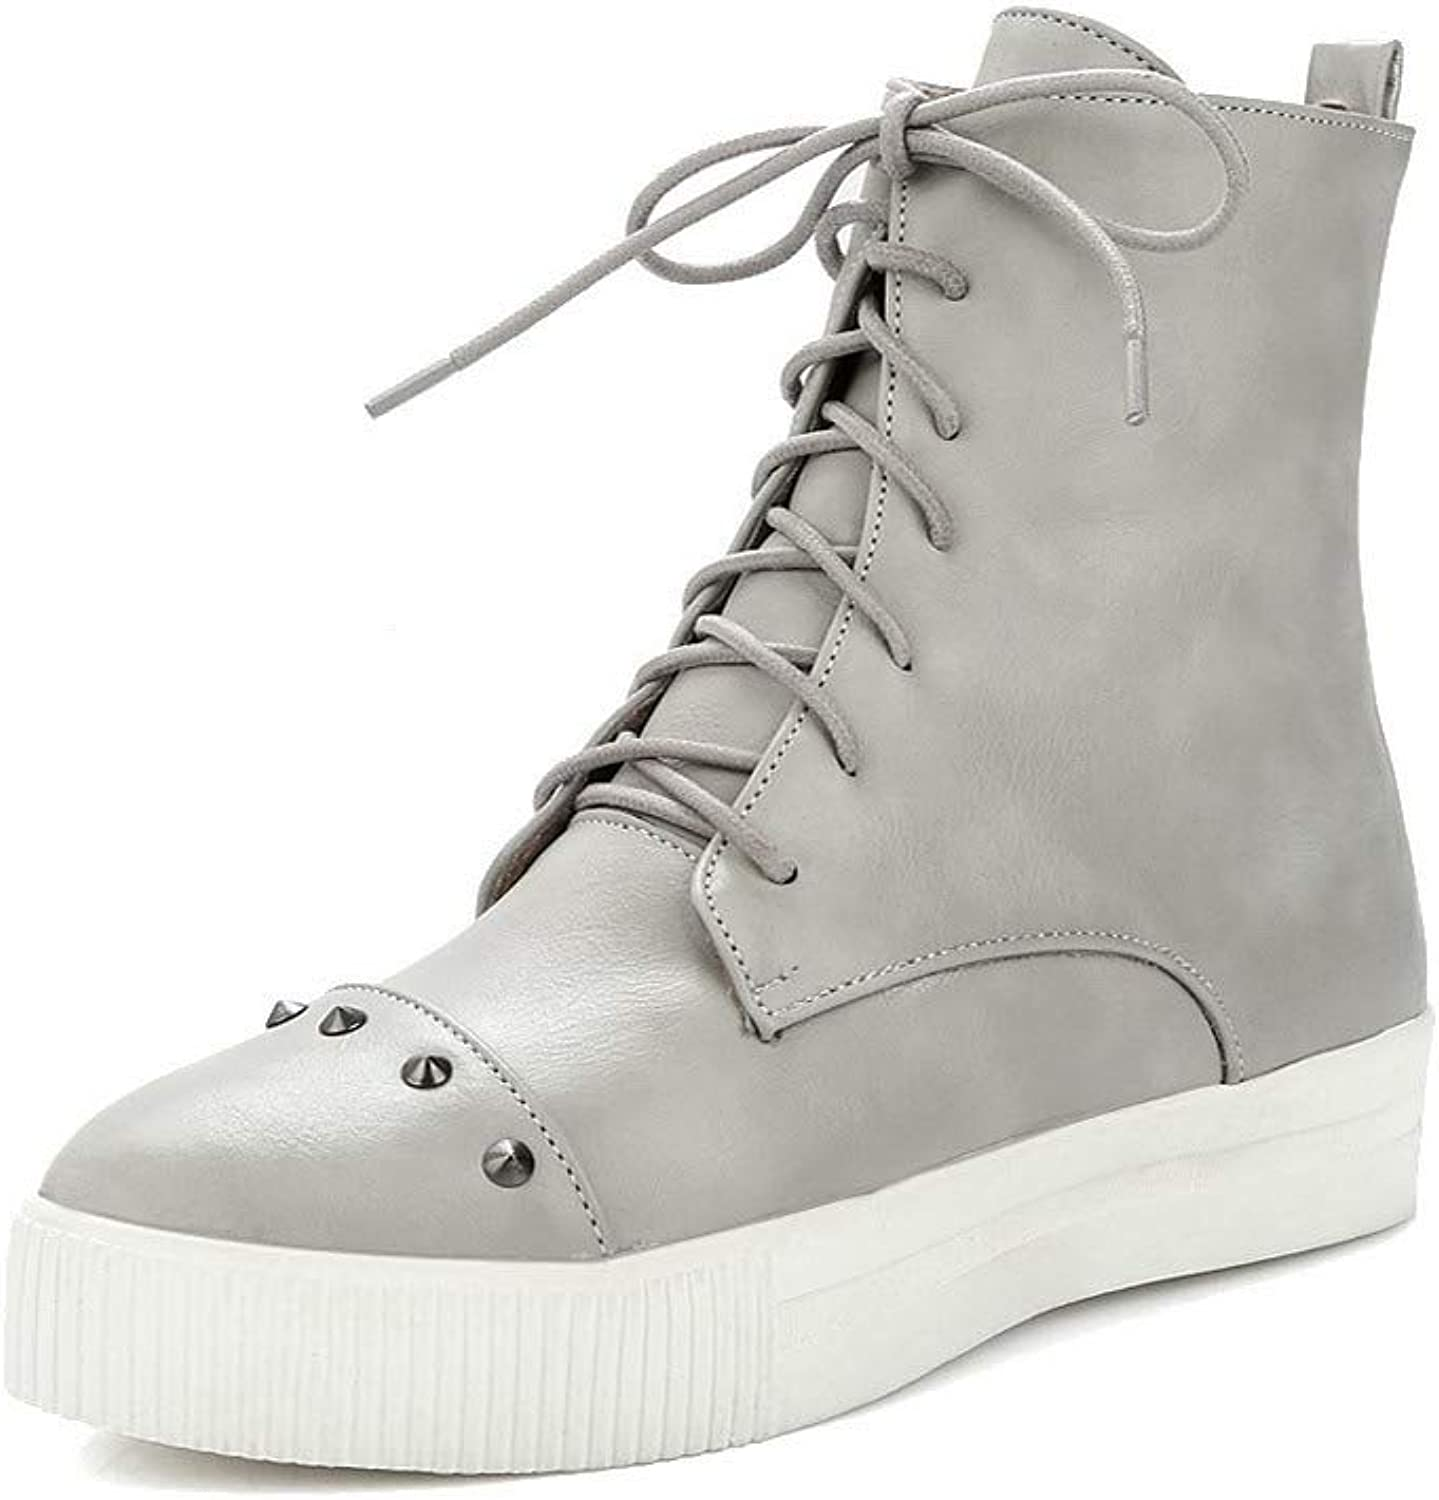 WeiPoot Women's Lace-Up Round-Toe Low-Heels Pu Low-Top Boots, EGHXH120716